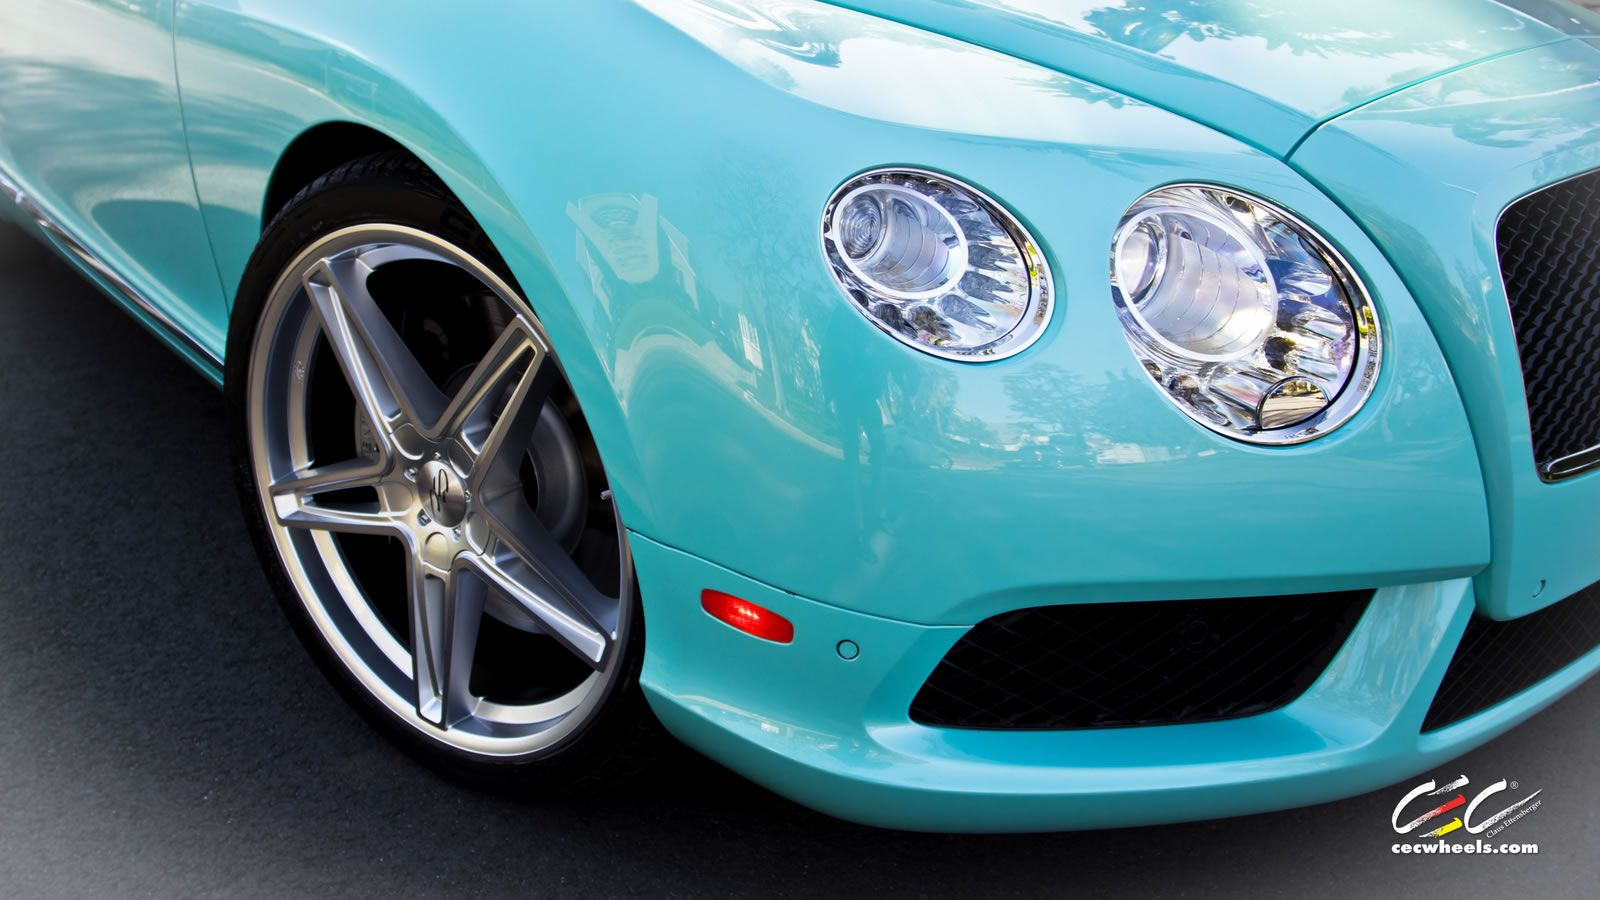 Celeste Blue Pearlescent Bentley Continental Gtc Limited